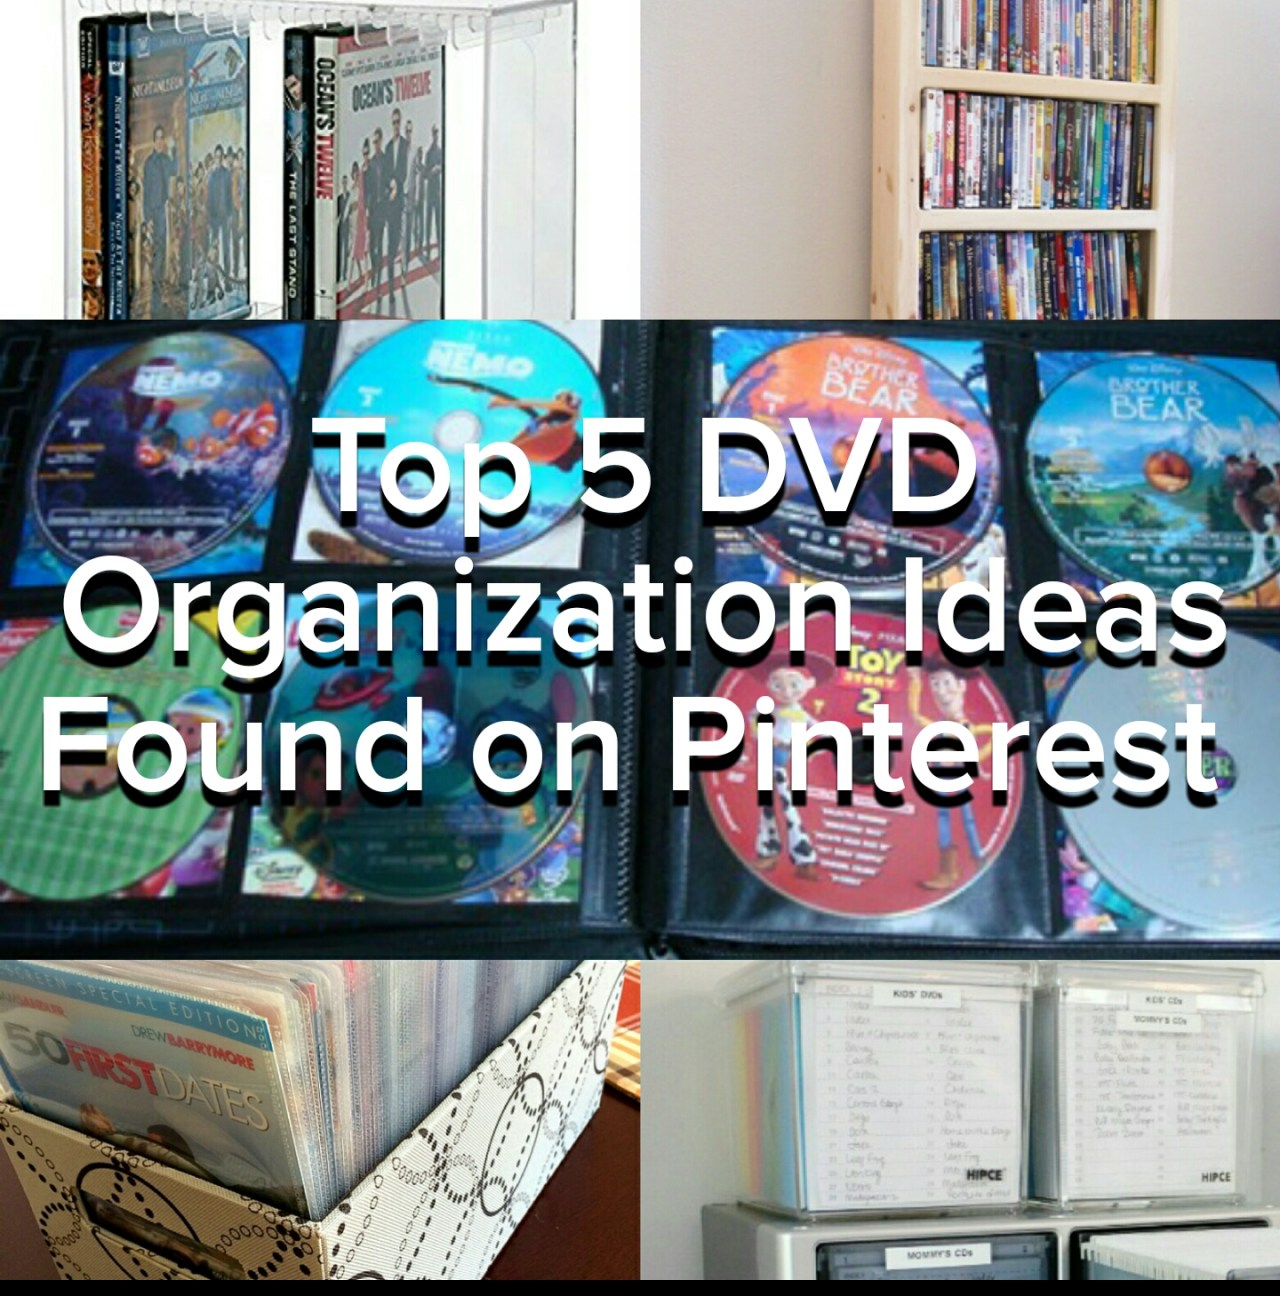 How to organize DVDs